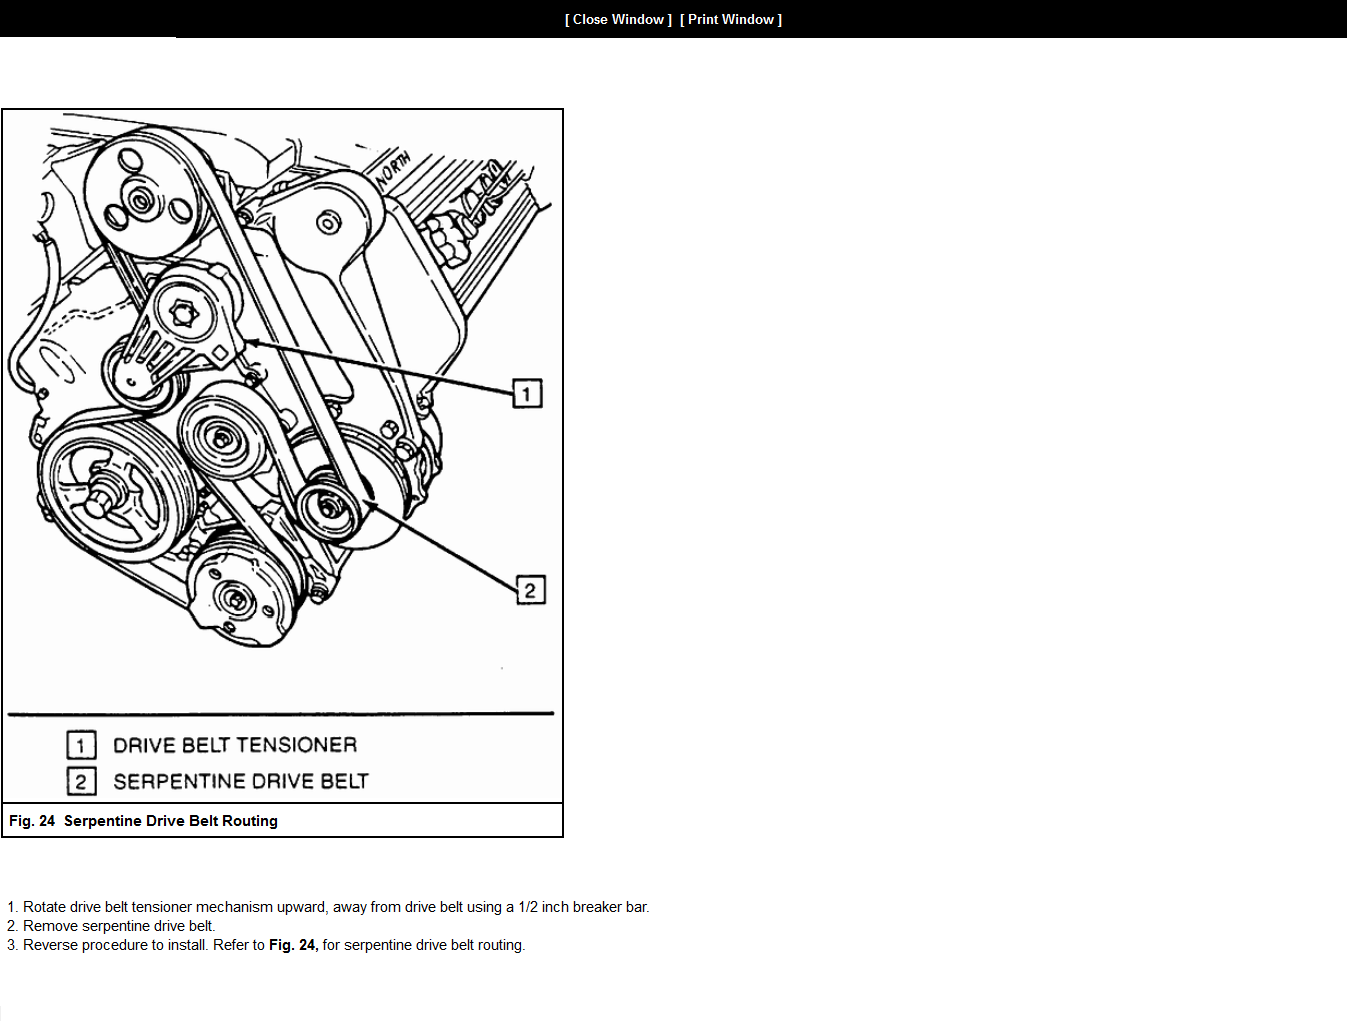 1997 cadillac deville alternator wiring diagram cadillac northstar alternator wiring diagram